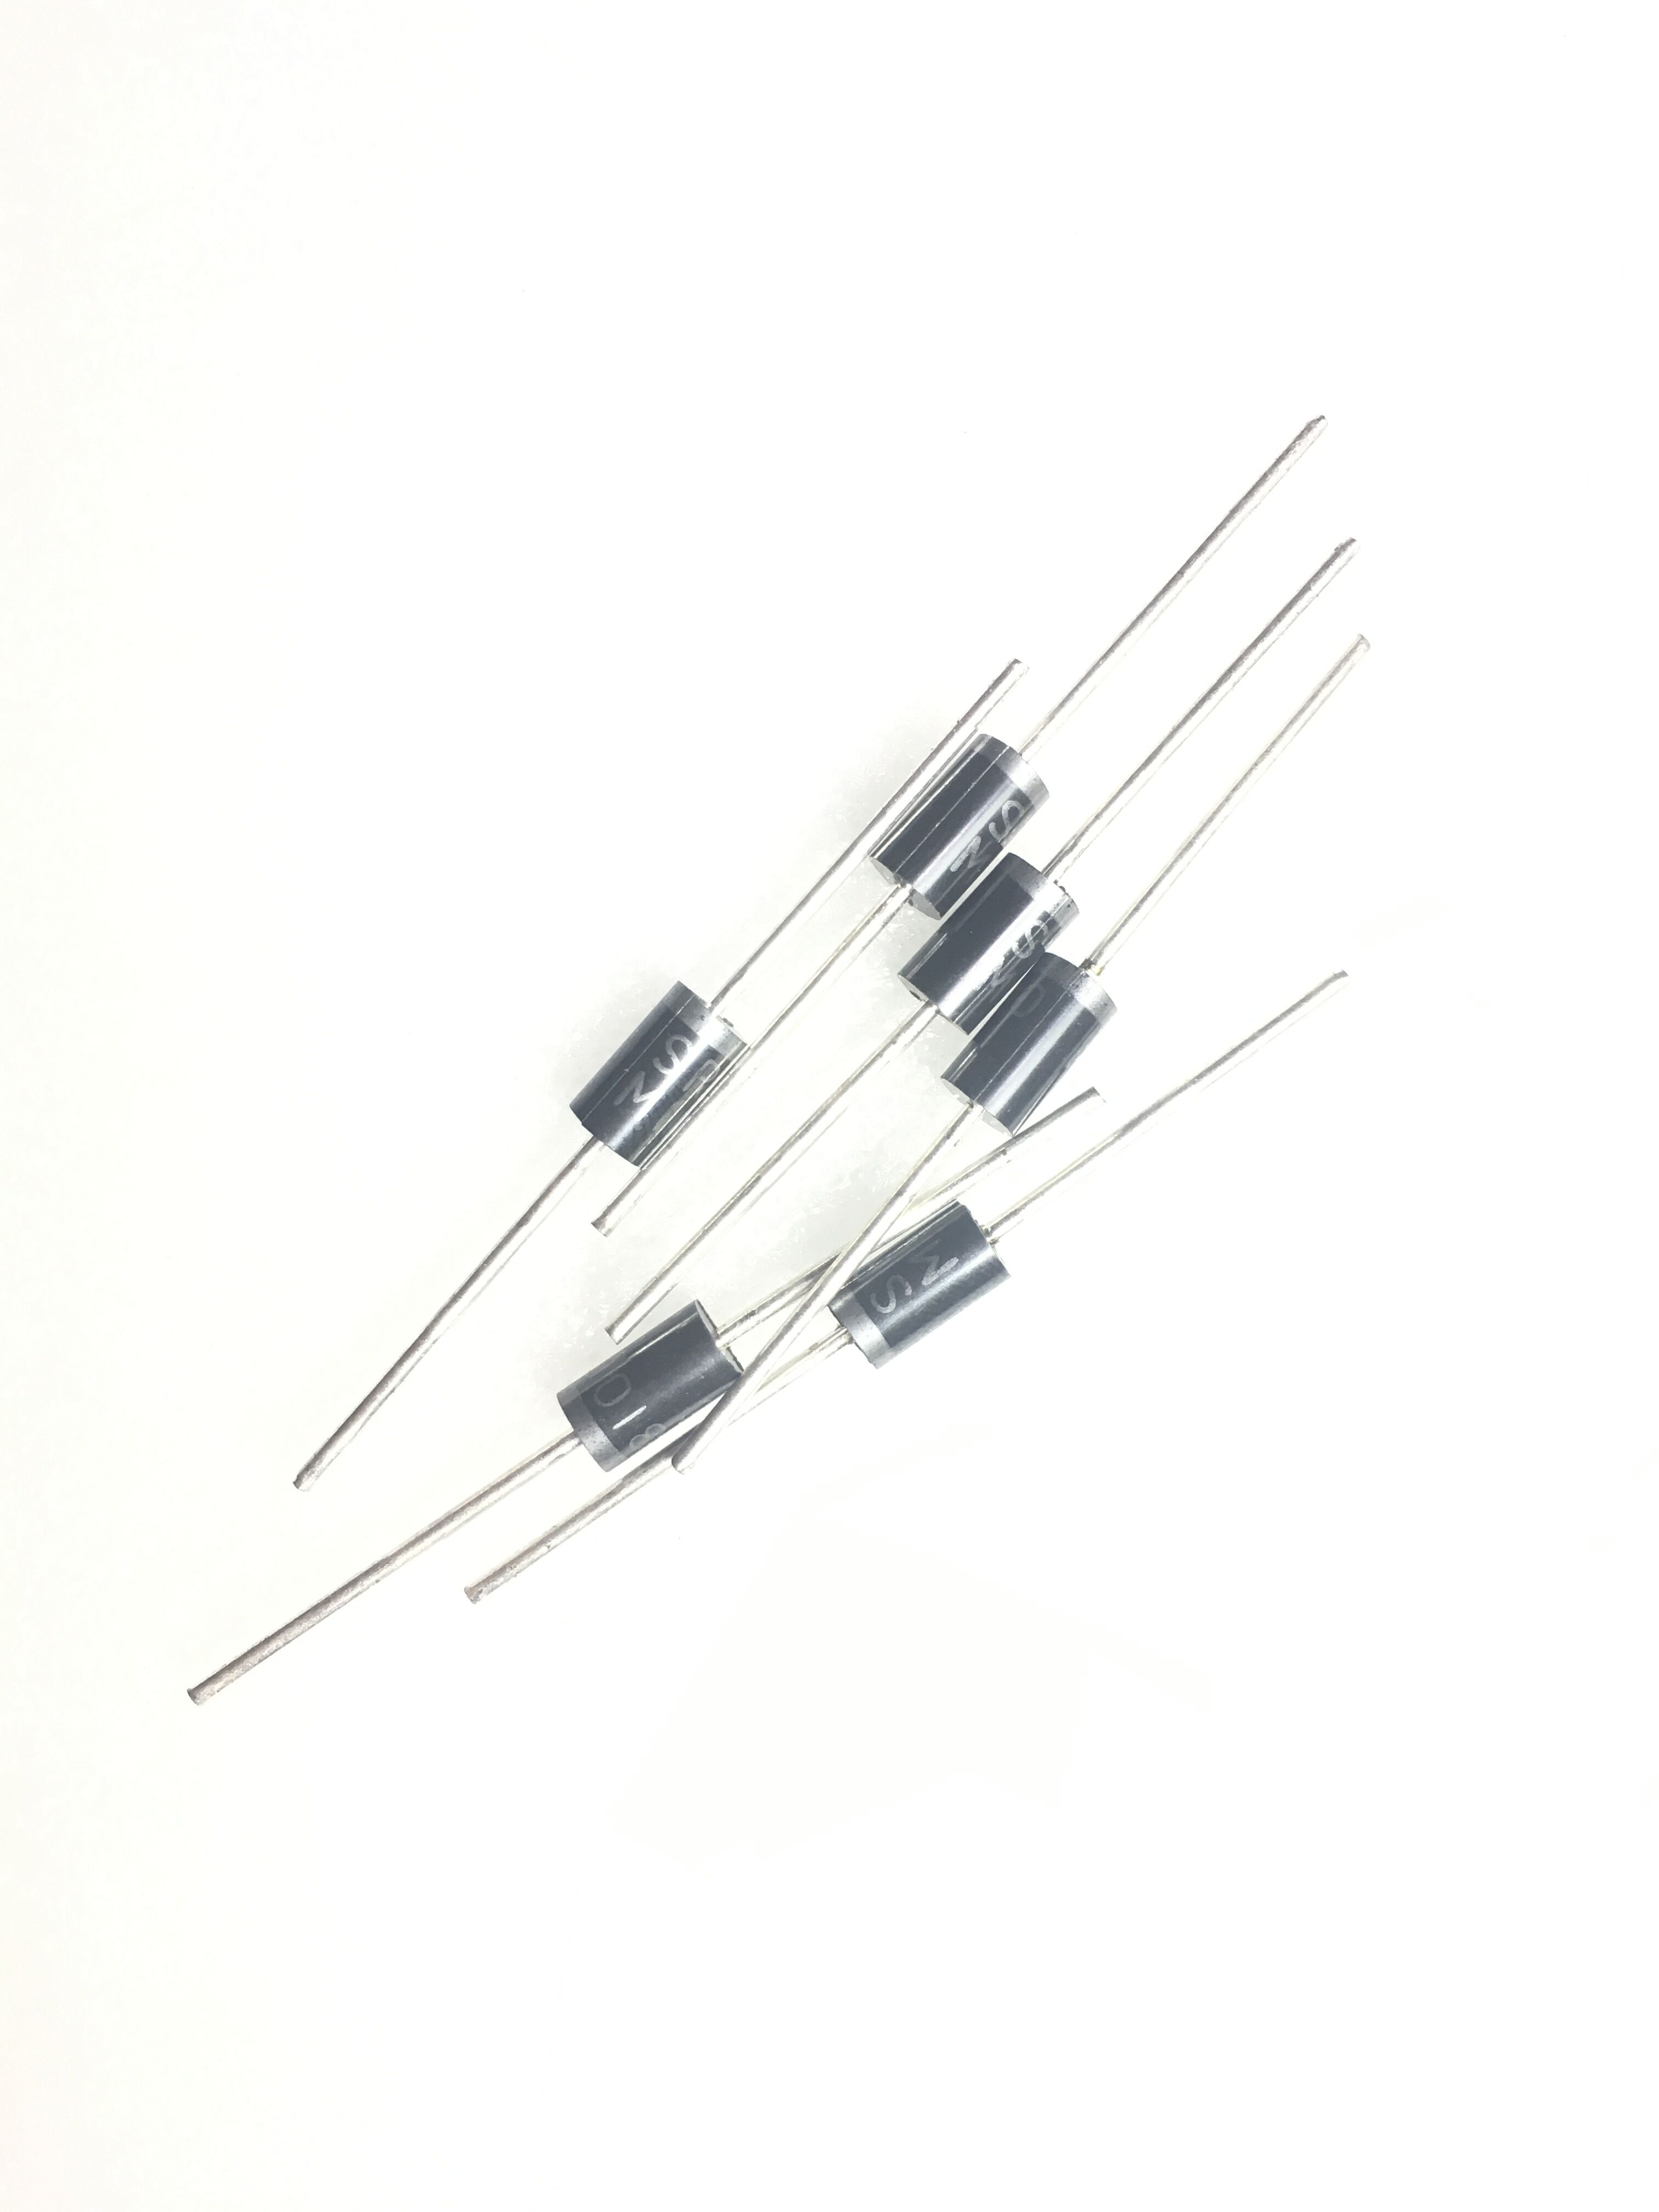 Usd 548 Zener Diode 5w20v 1n5357b Taping 5w 10 6 Yuan Schottky Diodes Pin Smd Switching Rectifier